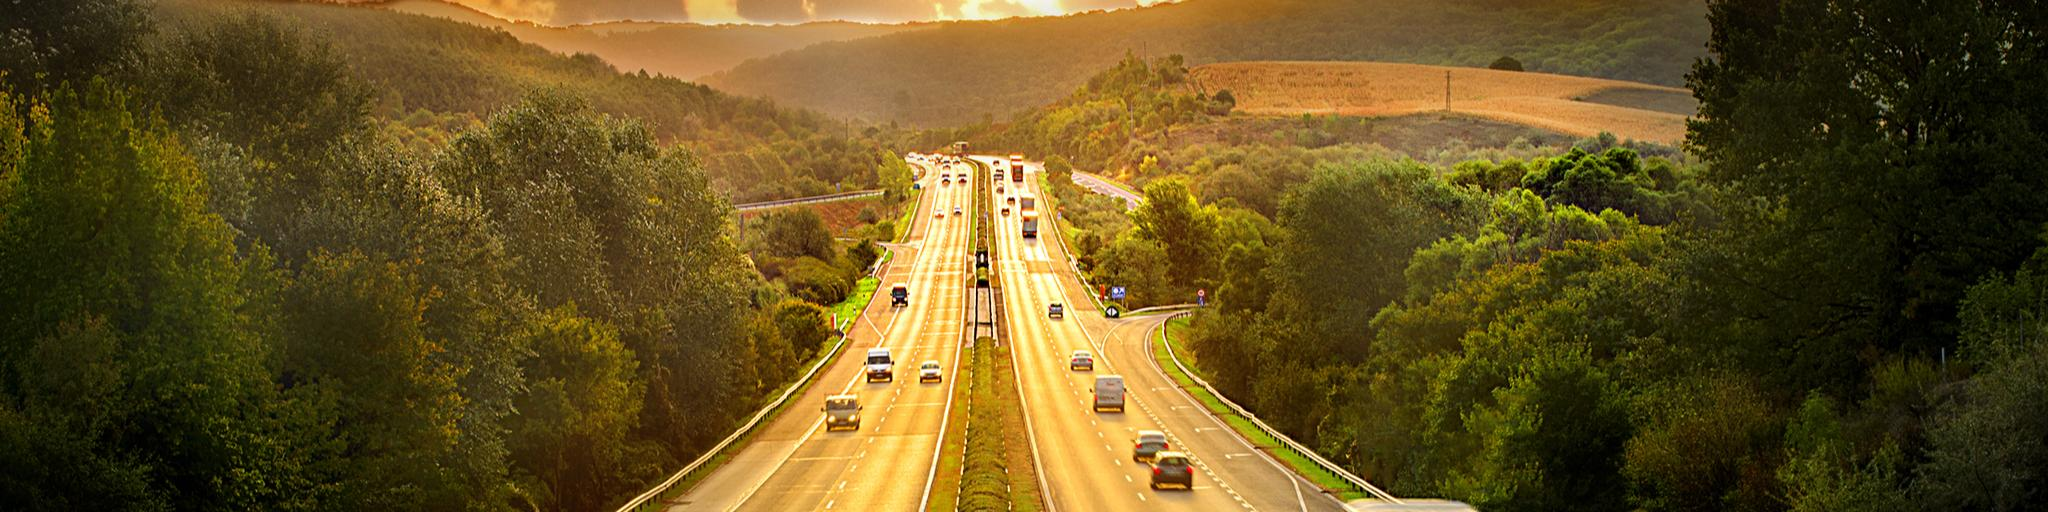 cars driving along the motorway at sunset